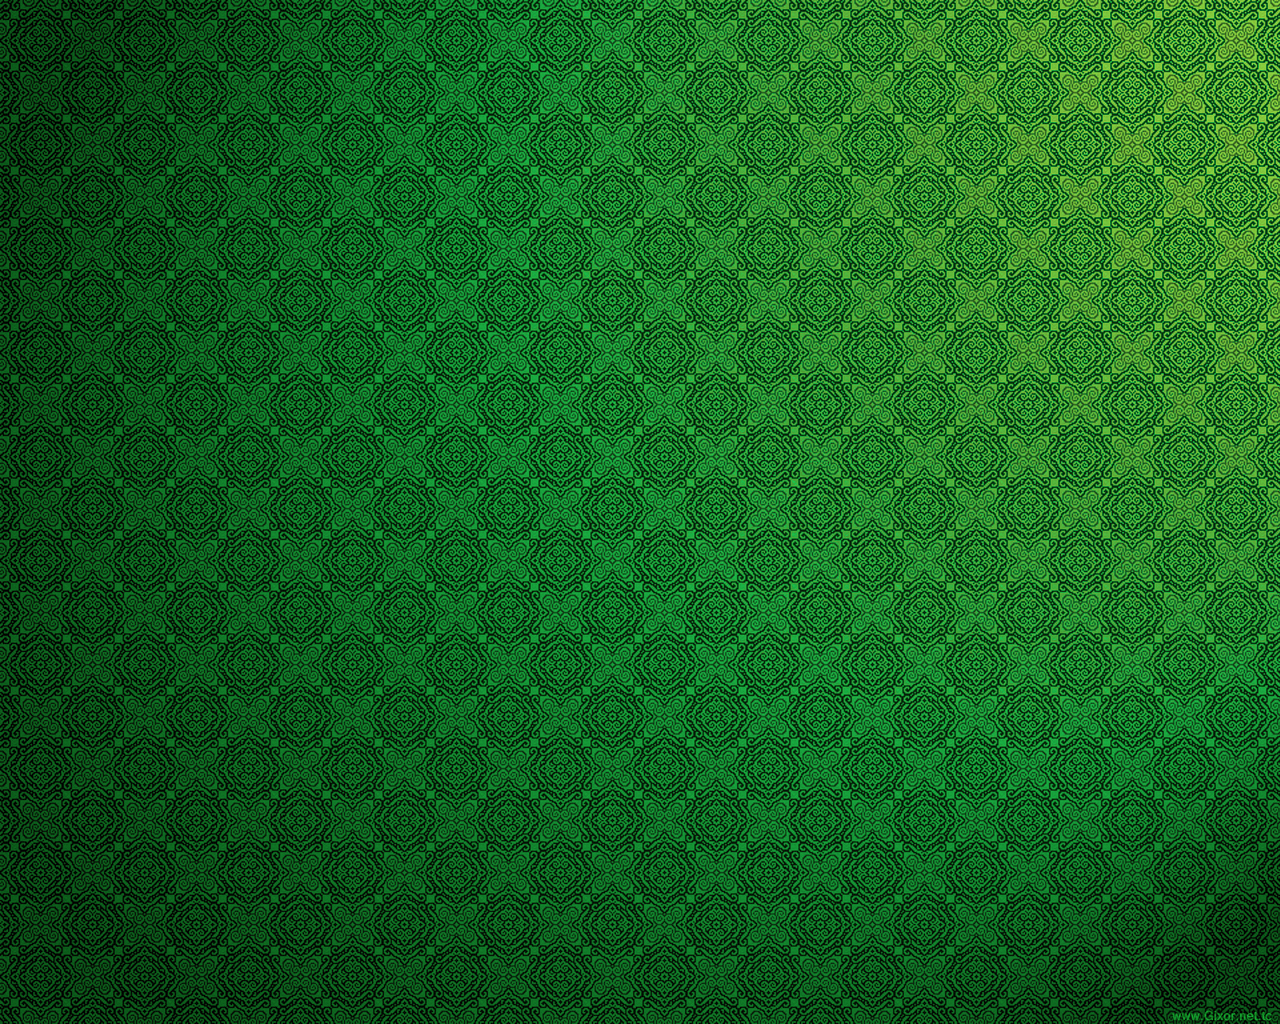 Apple Think Green Background Hd Desktop Wallpaper